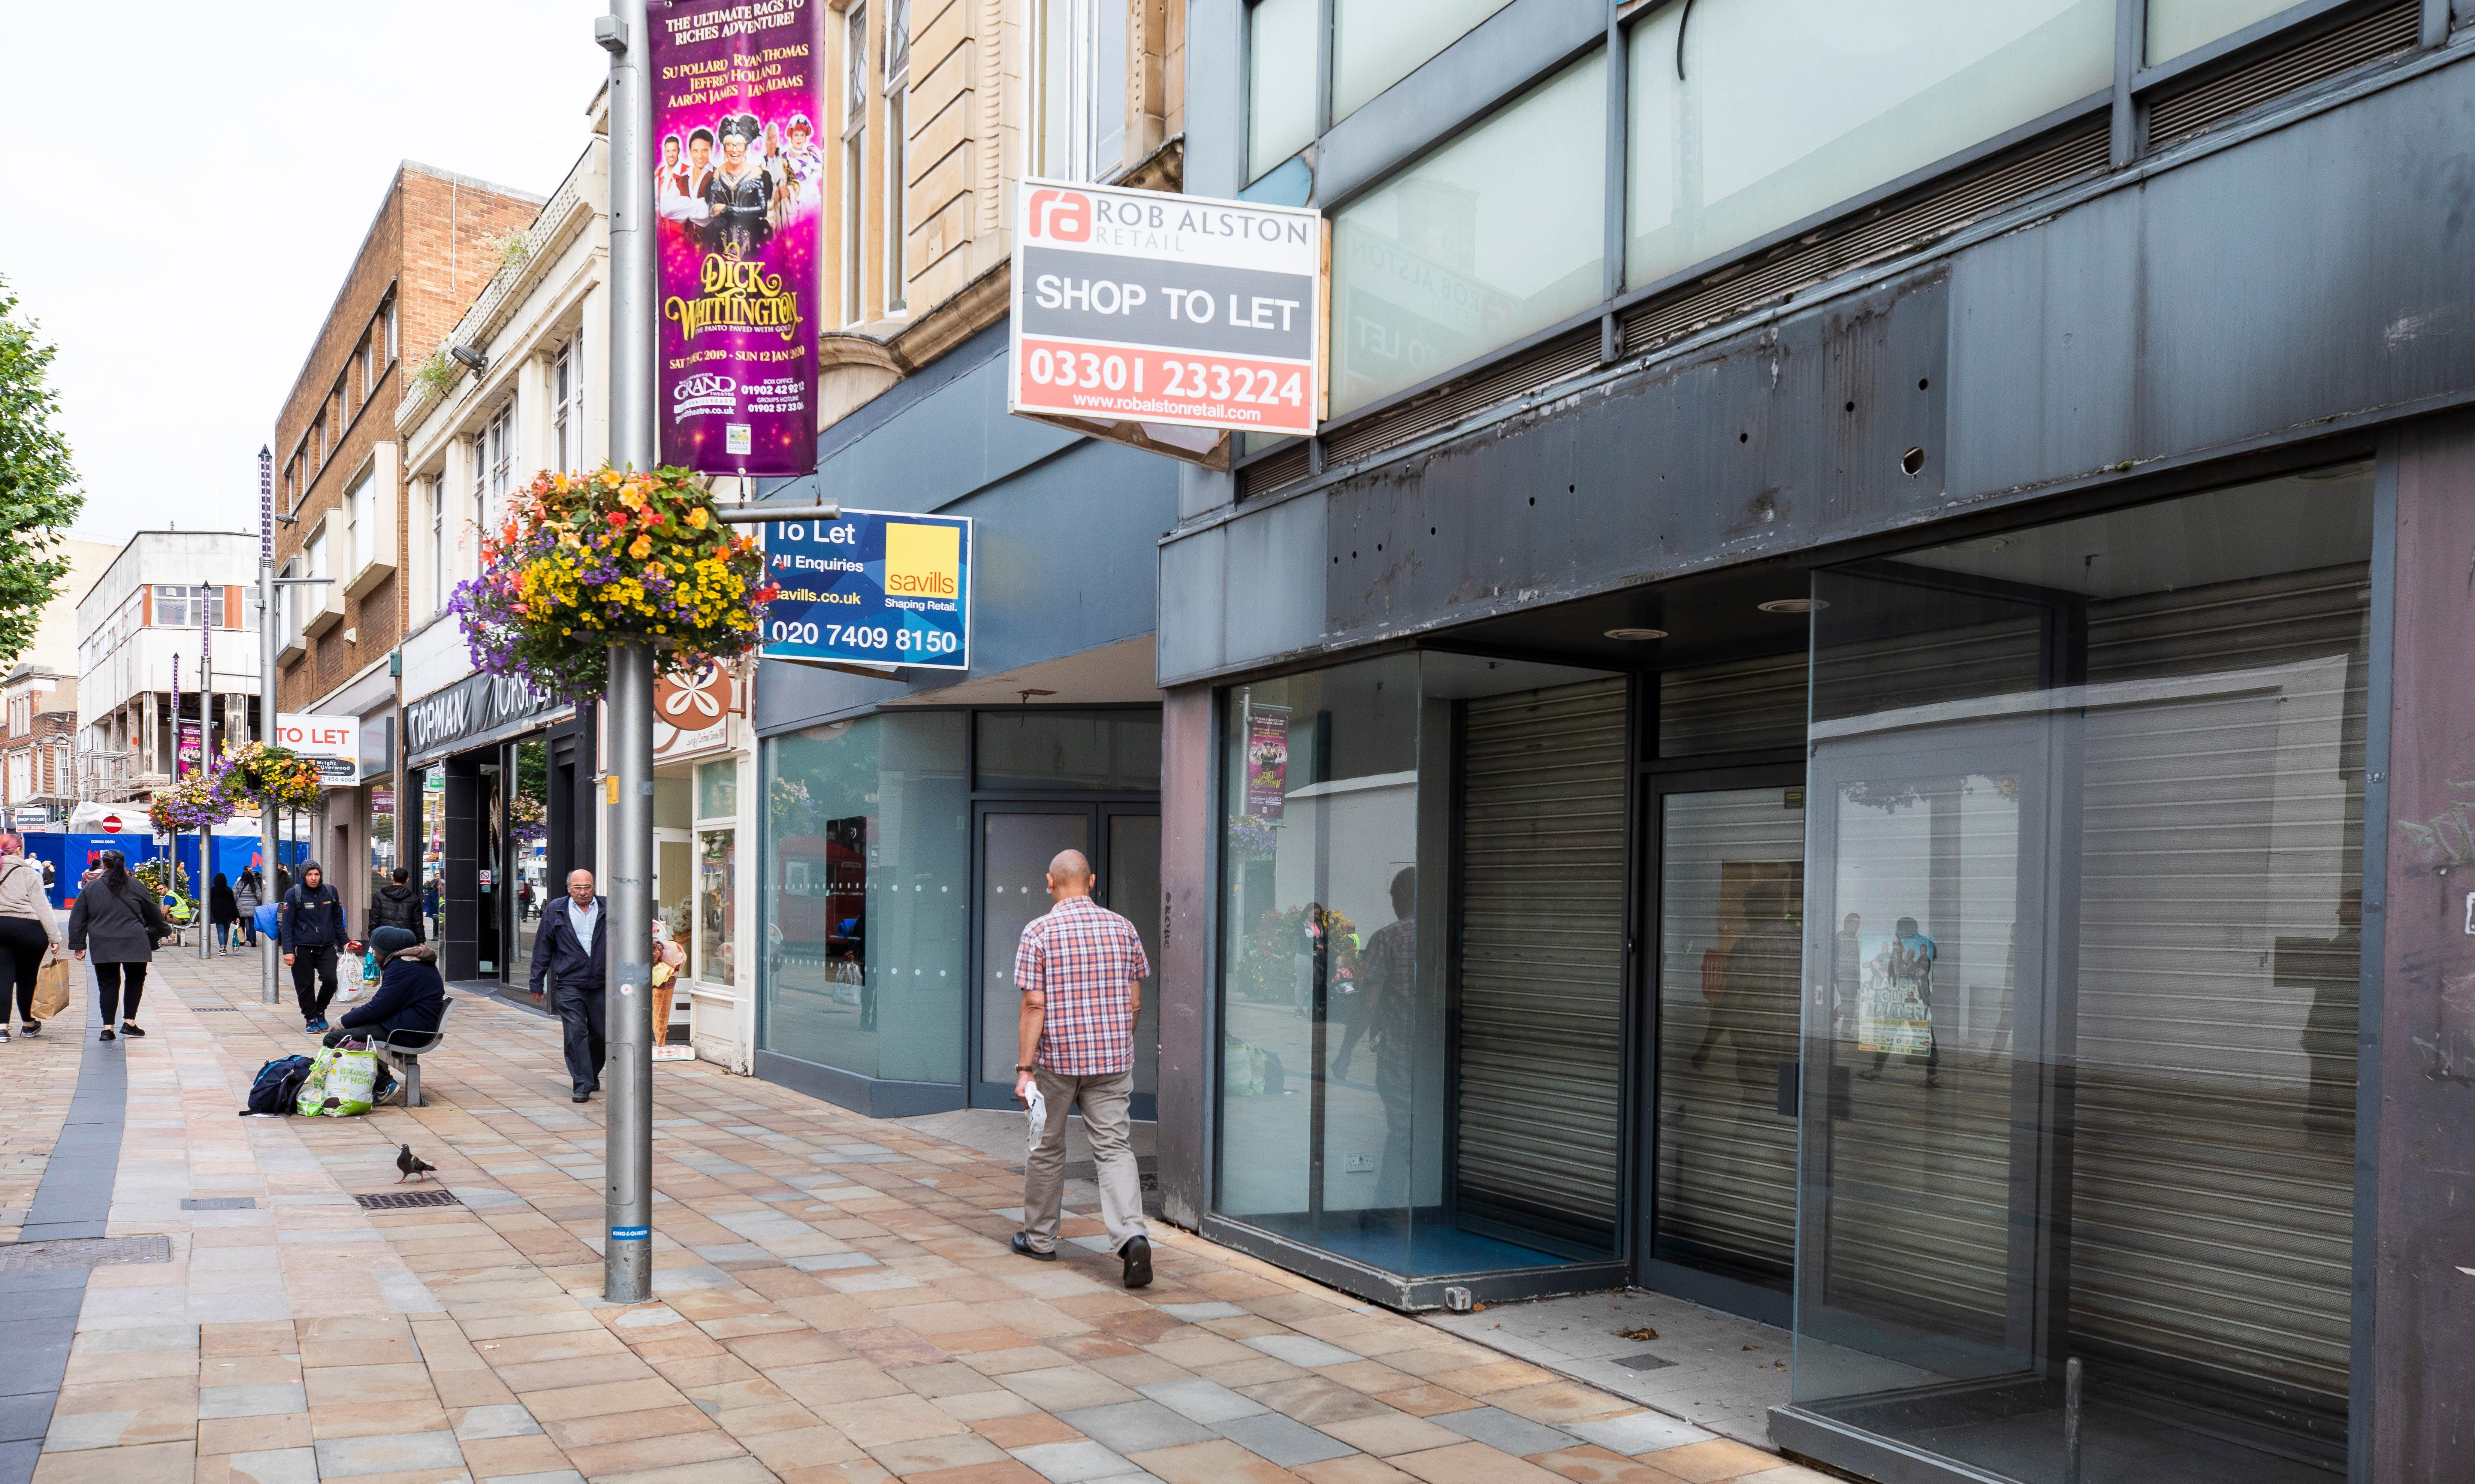 Retailers call for action as high street store closures soar